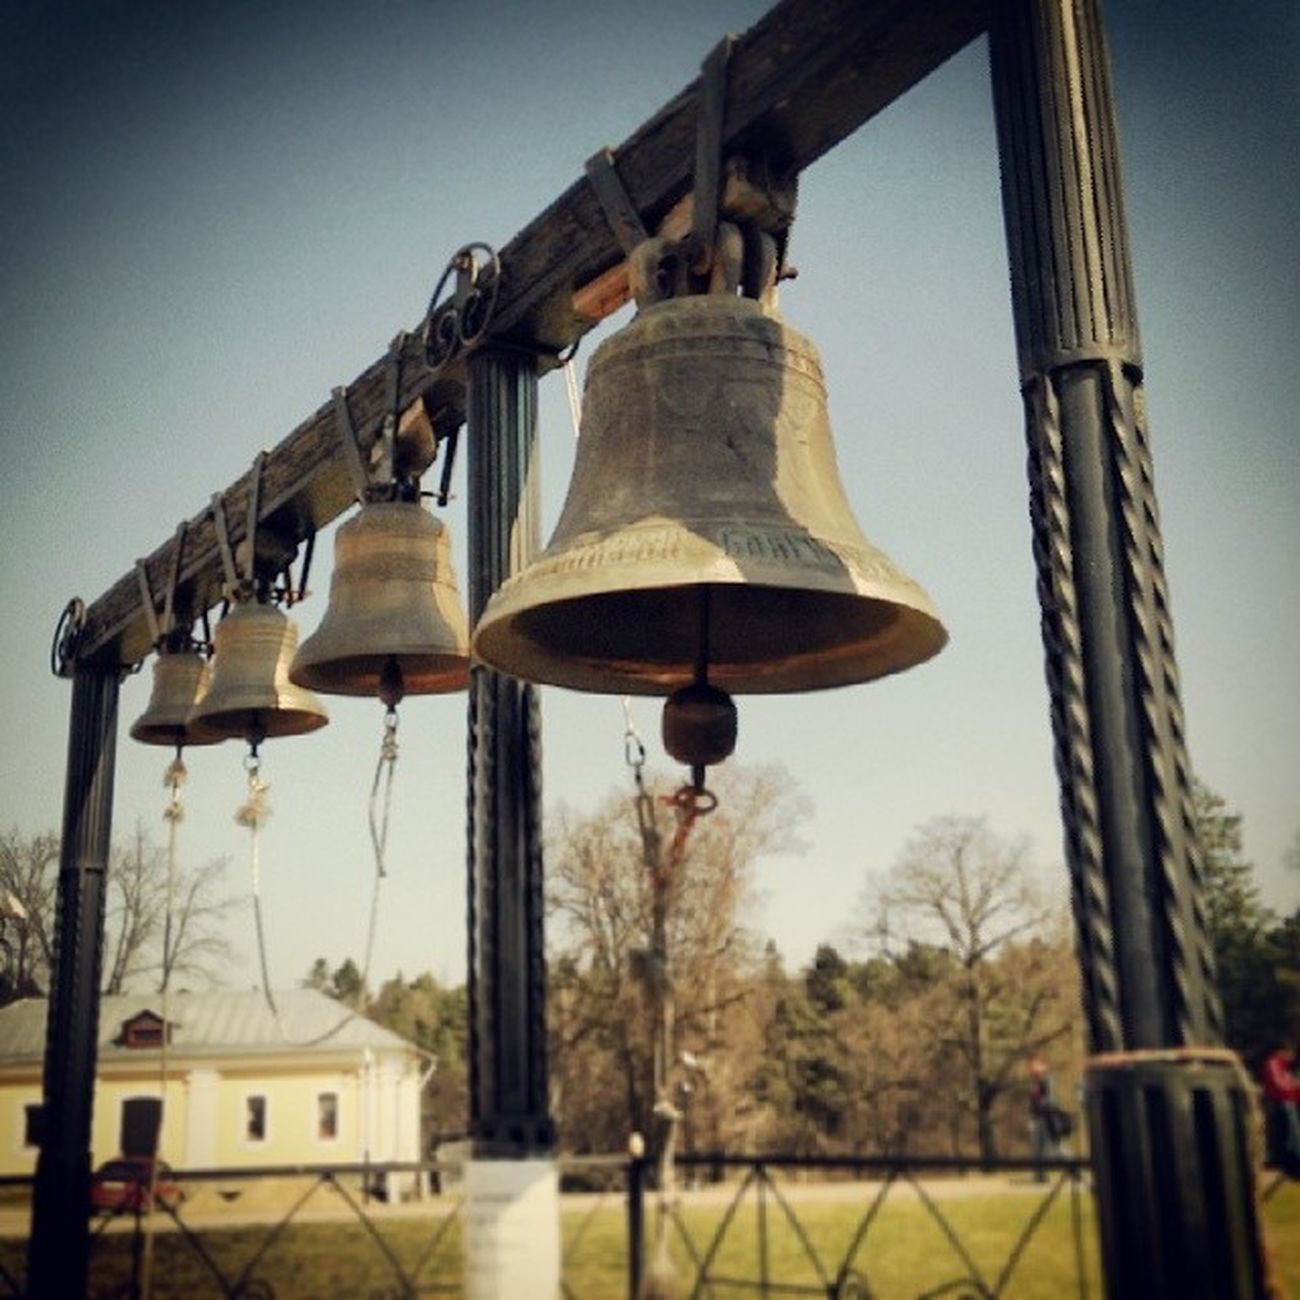 Faifh Church Bell History museum tour